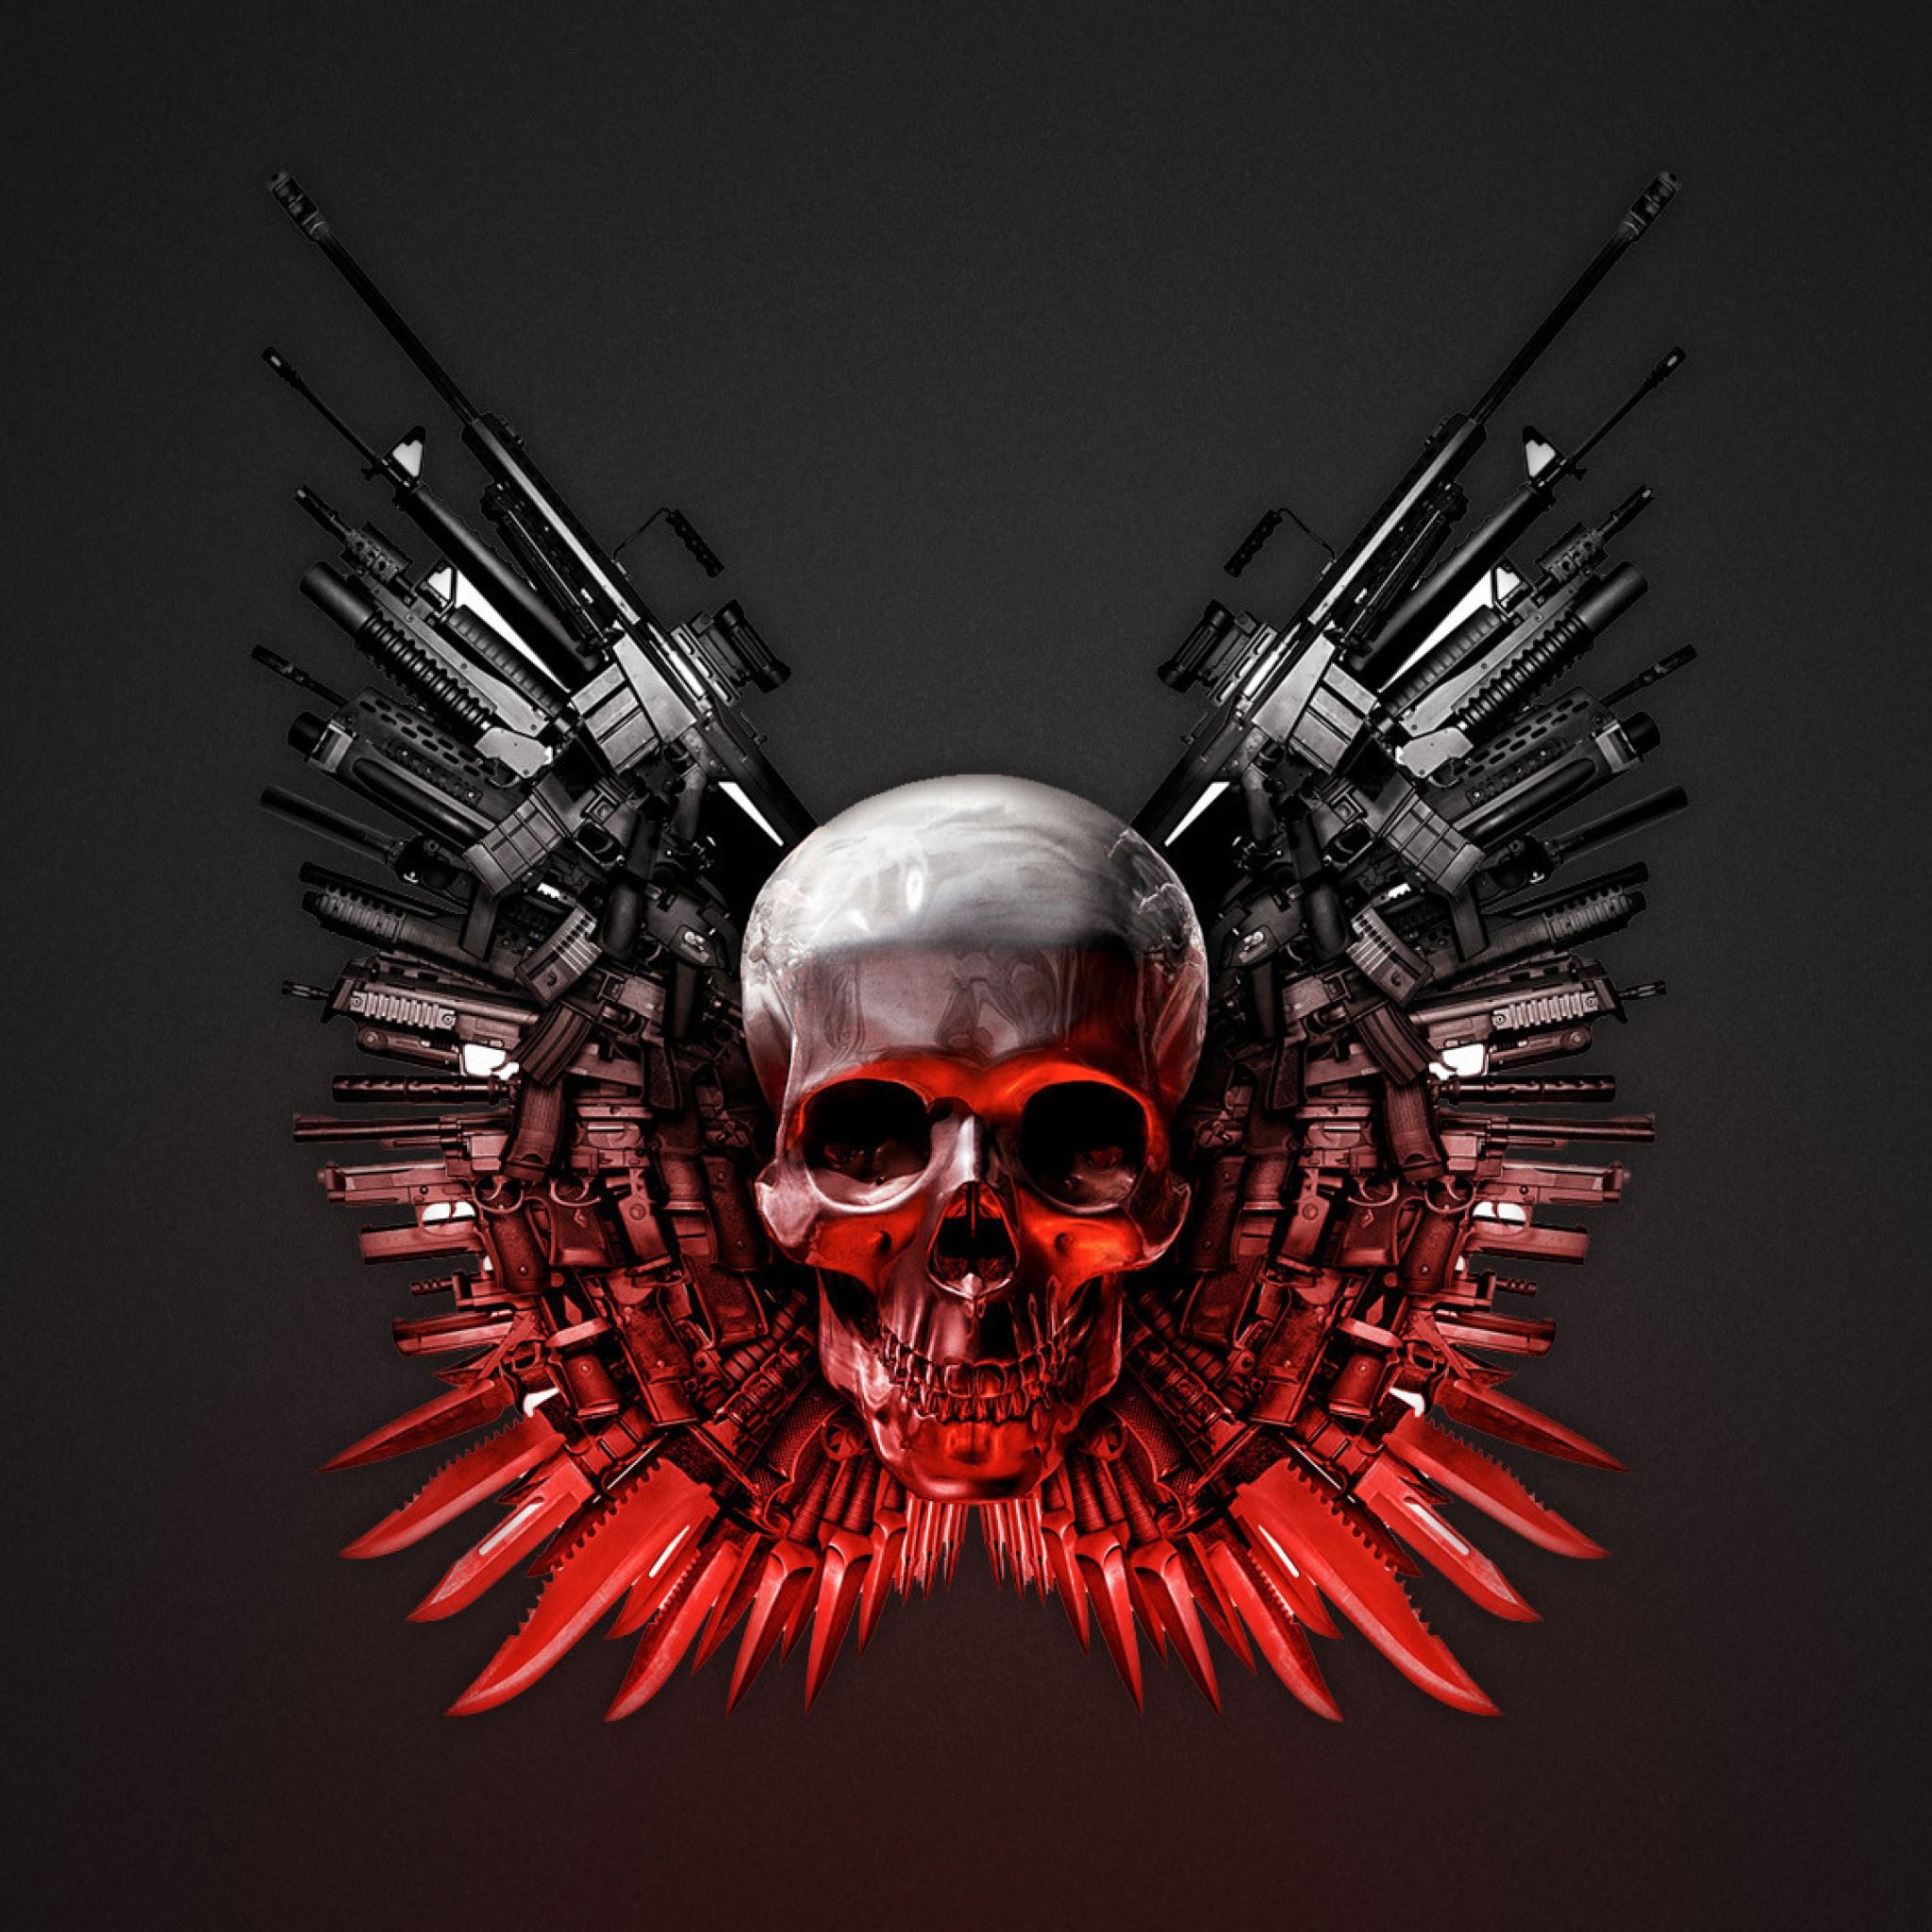 The Expendables Weapons Hd Ipad Air Wallpapers Free Download